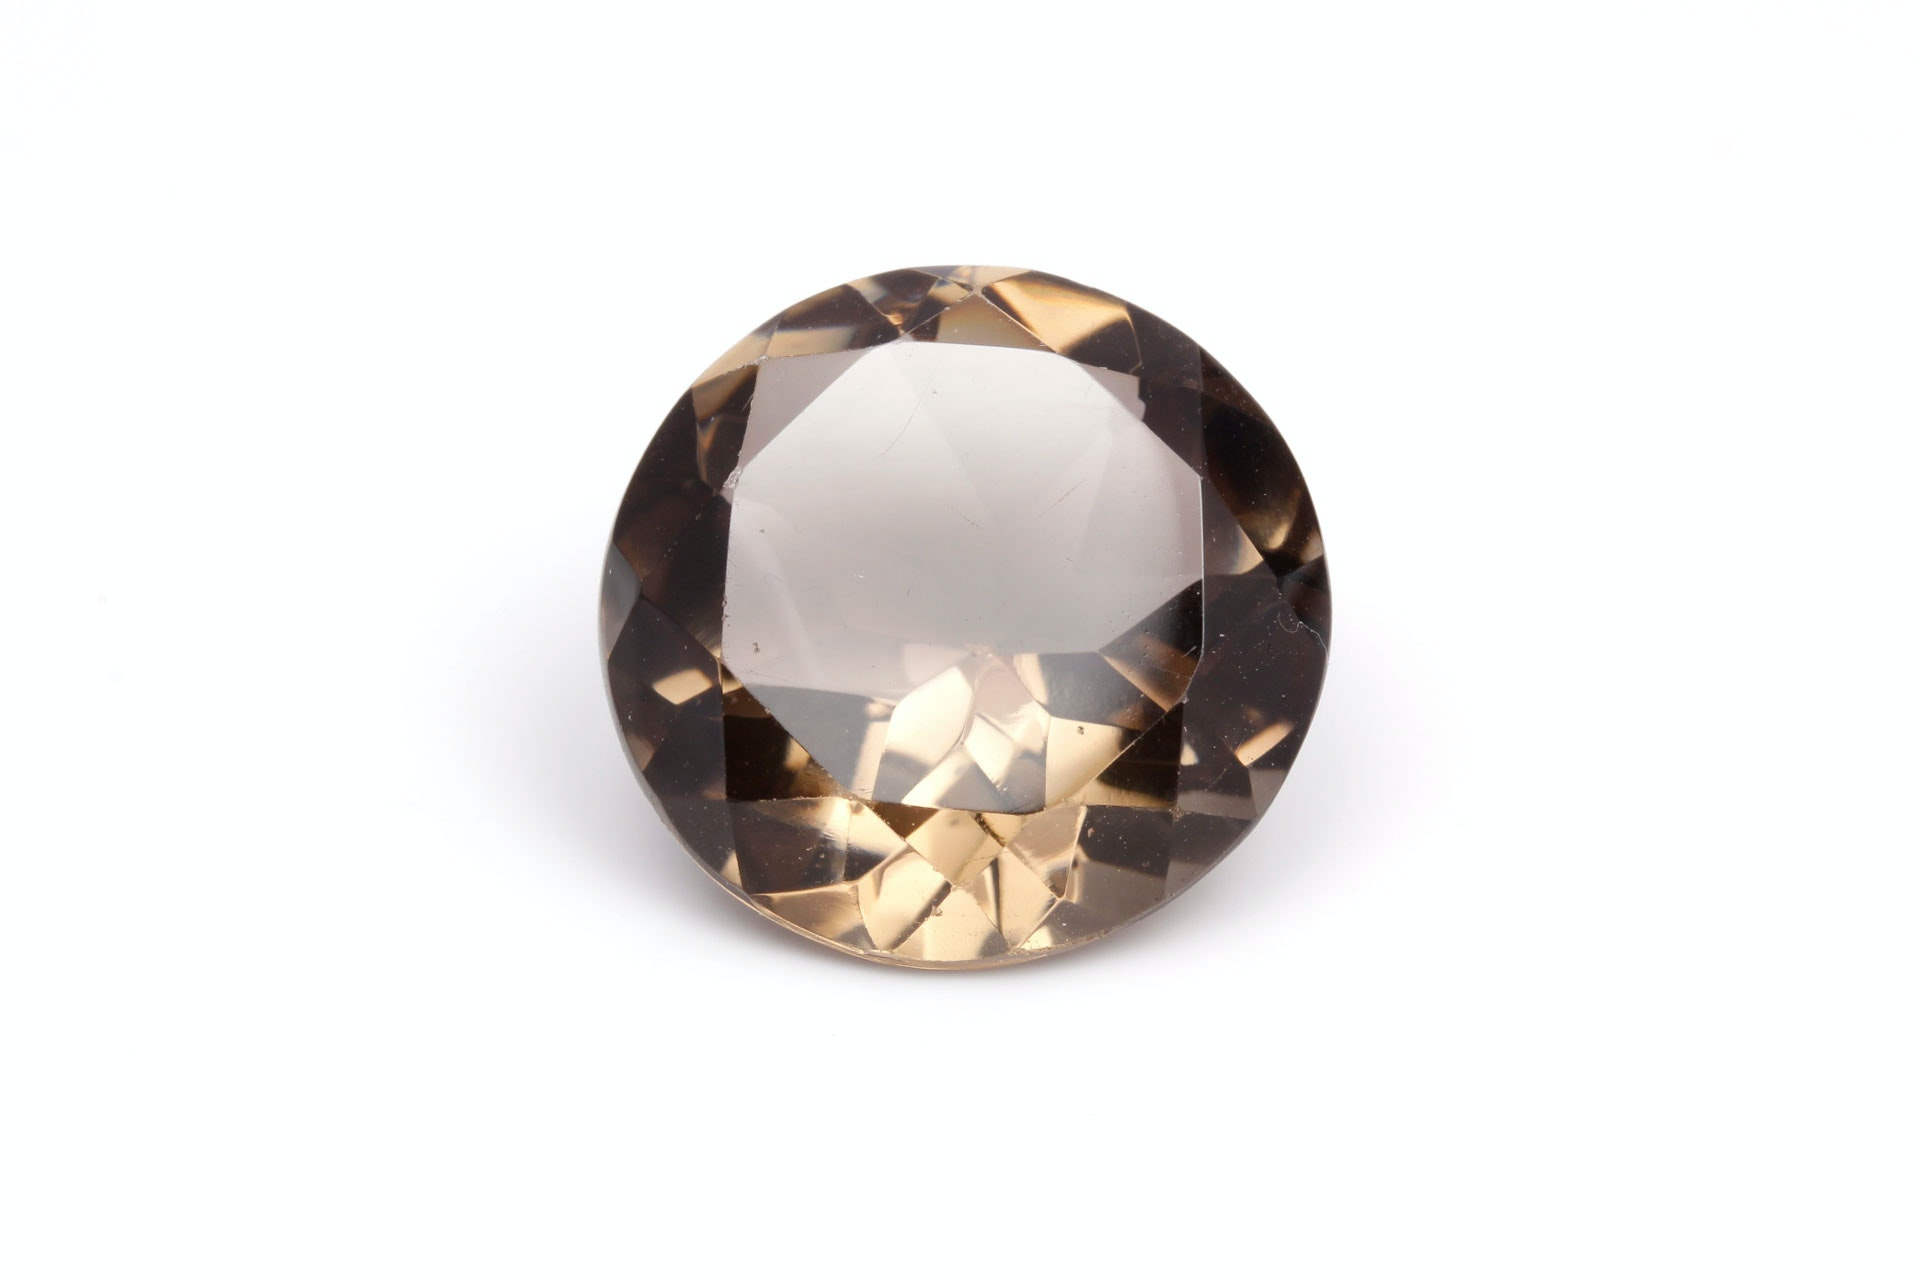 17.07 CT Smoky Quartz